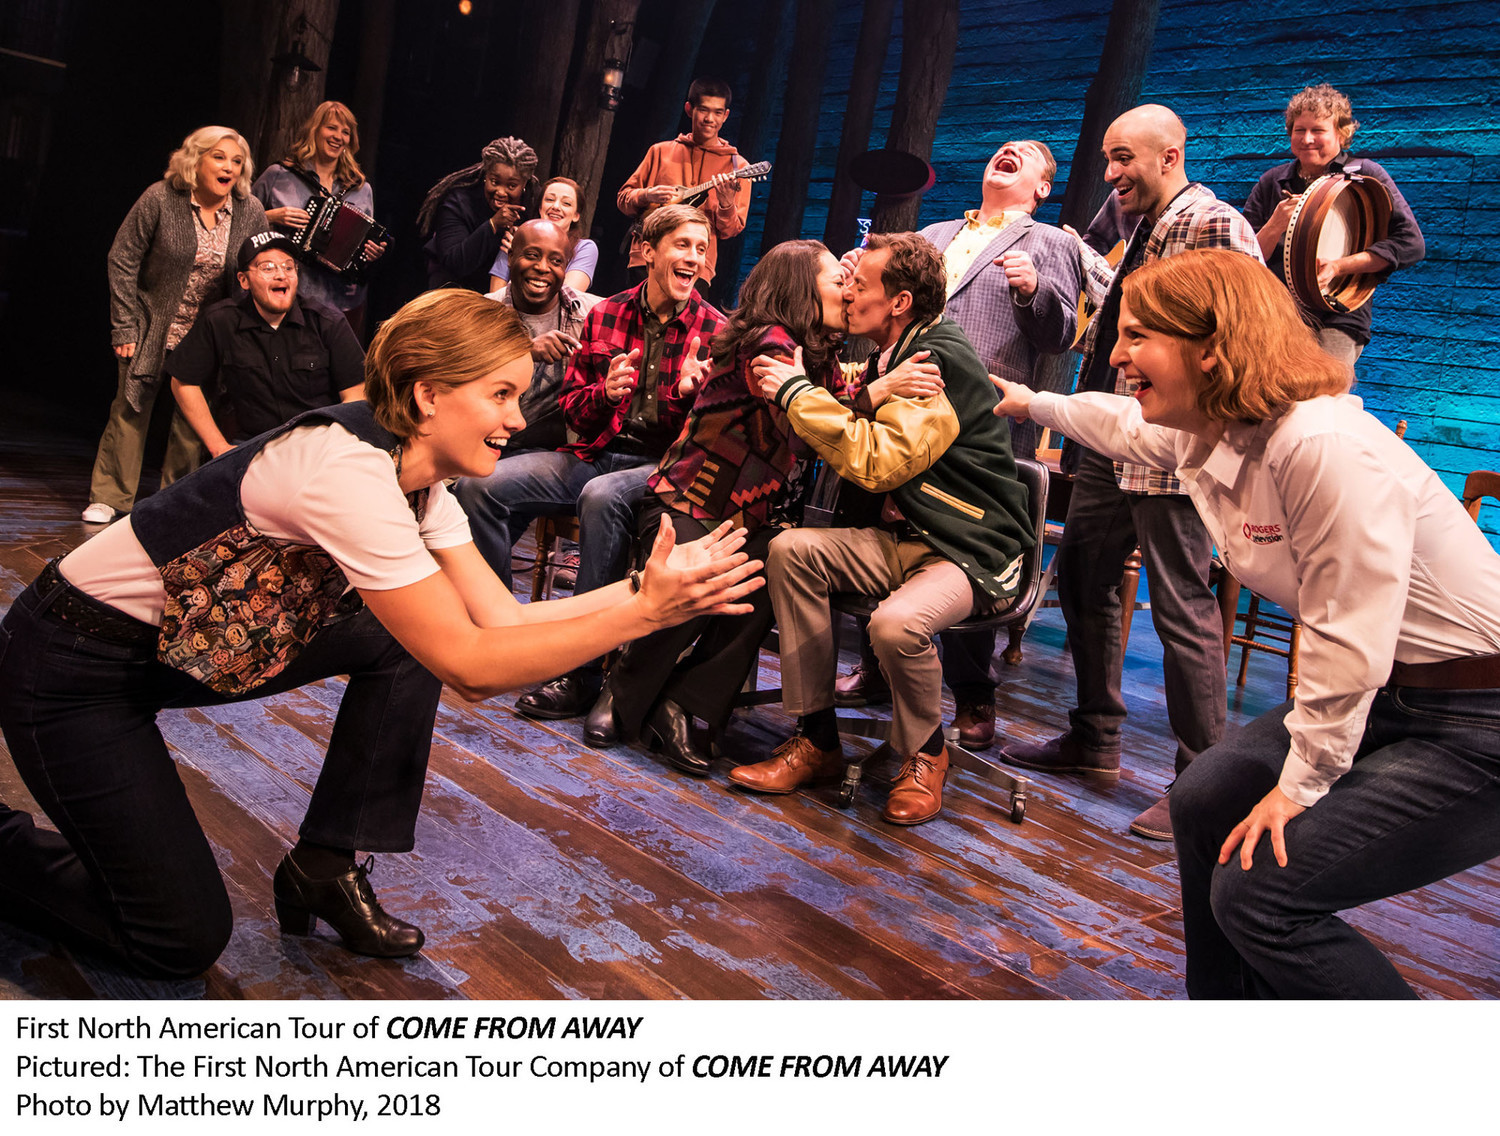 BWW Review: COME FROM AWAY Feels Like Coming Home in Calgary